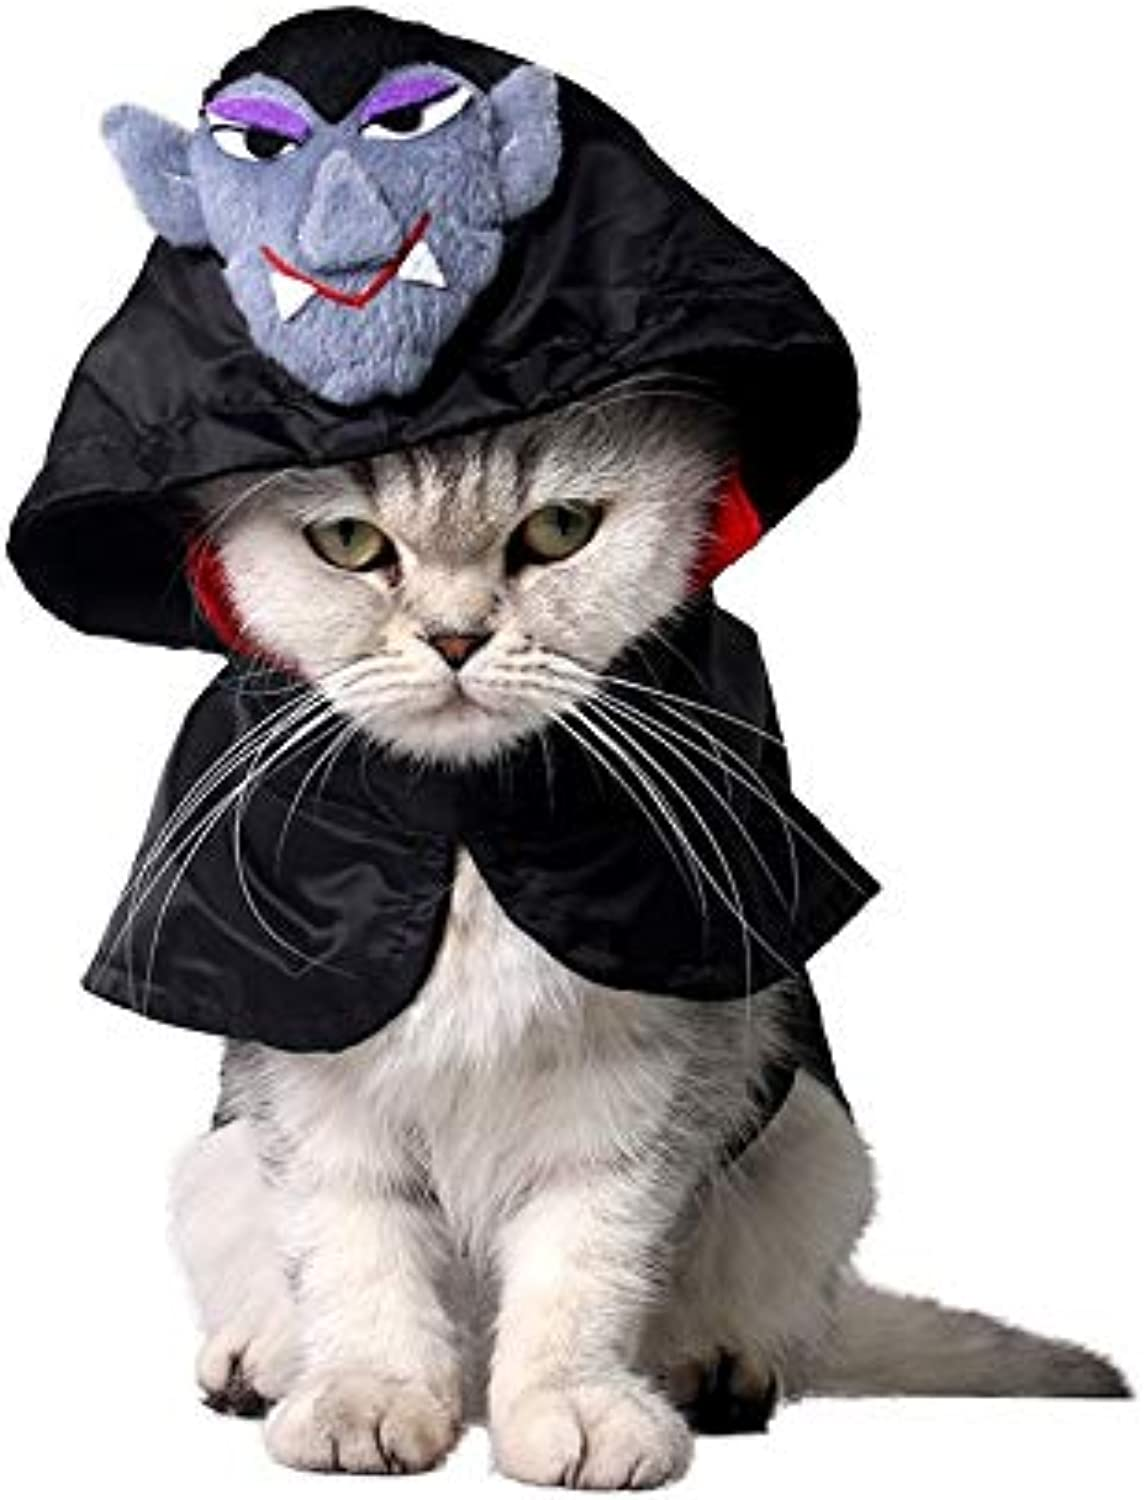 Albabara Cute Hooded Cloak Witch Wizard Costume for Dogs & Cat Kitten, Halloween Costume Headwear Cosplay Accessories for Cats and Small Dogs Less Than 4Lb